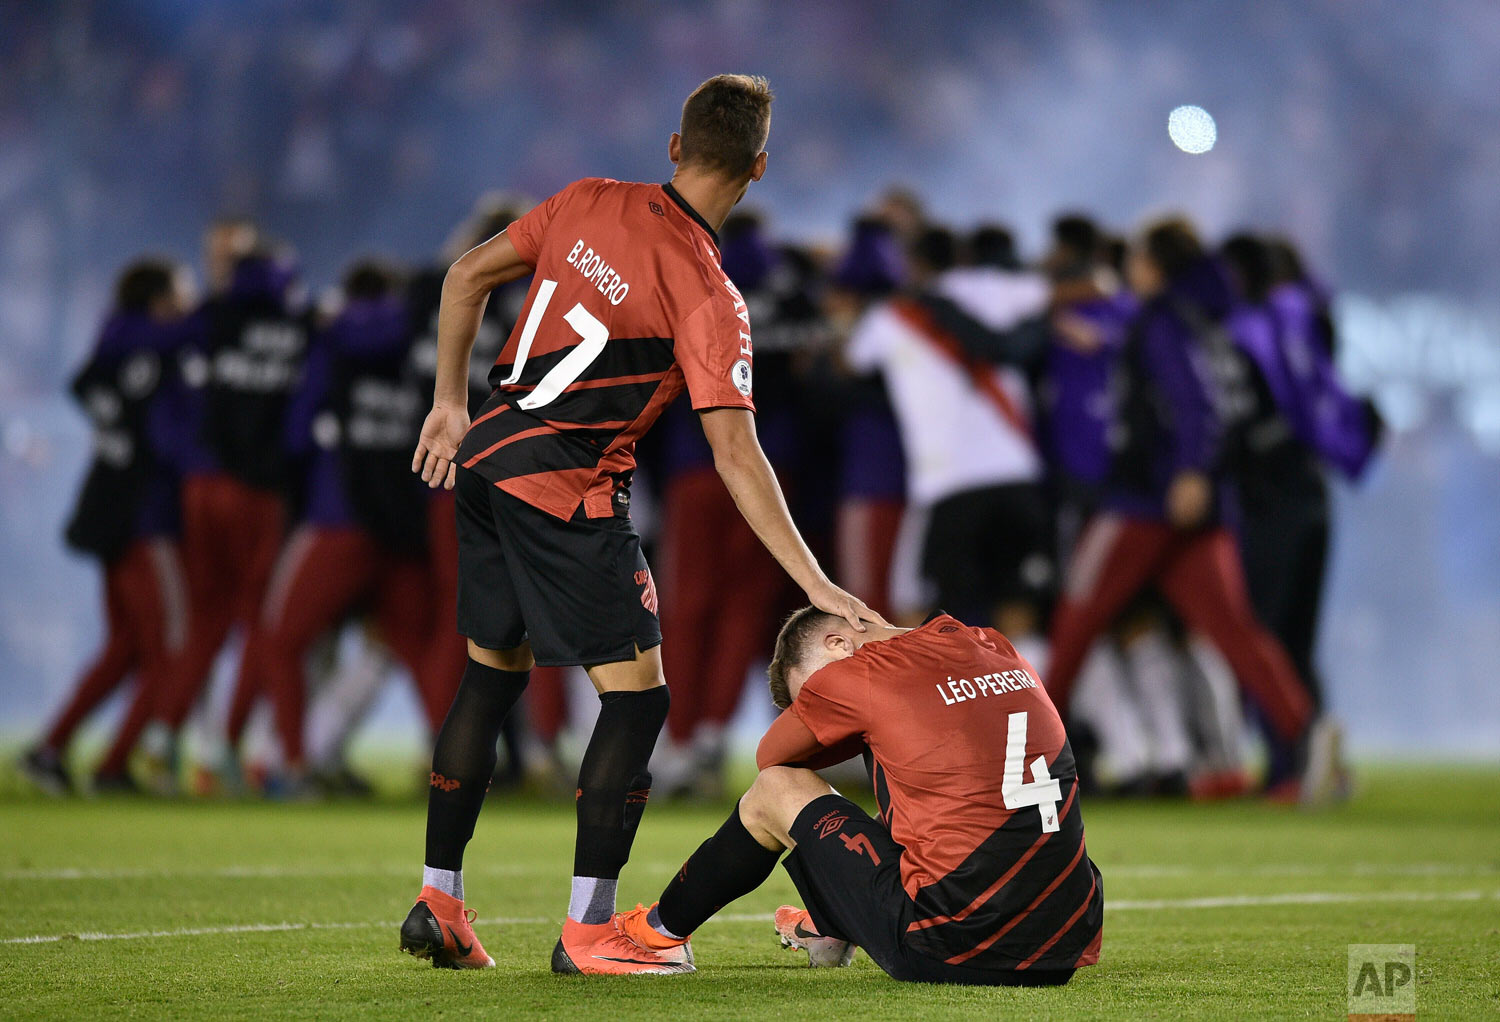 Leo Pereira of Brazil's Athletico Paranaense sits on the field as teammate Braian Romero pats him on the head after they lost the Recopa Sudamericana final 3-0 to Argentina's River Plate in Buenos Aires, Argentina, Thursday, May 30, 2019. (AP Photo/Gustavo Garello)